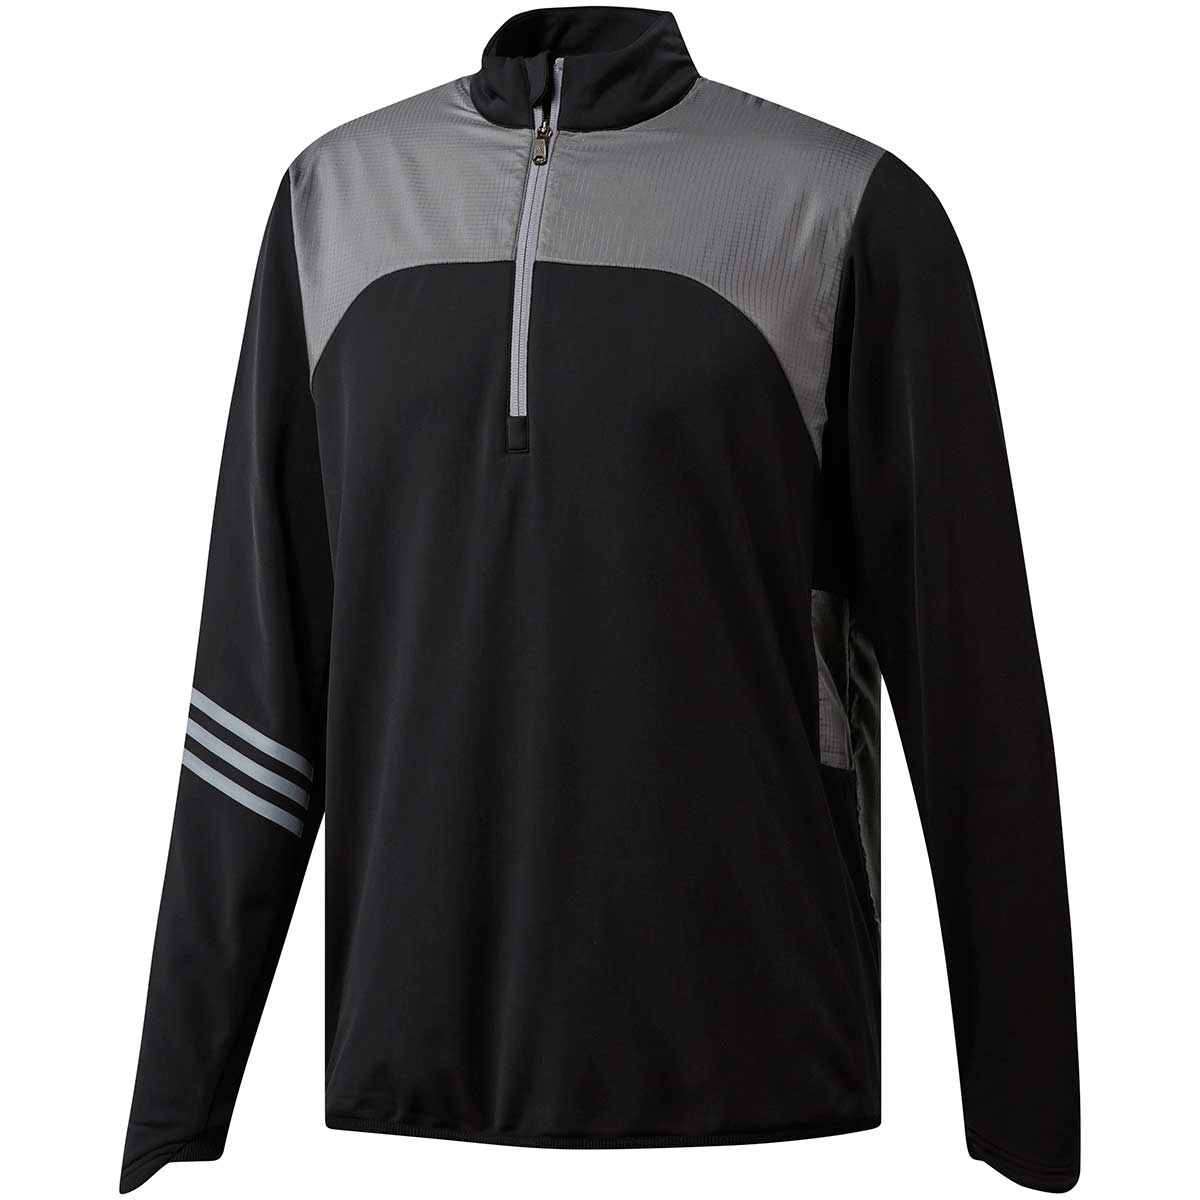 Adidas Climaheat Frostguard 1/4 Zip Black Pullover